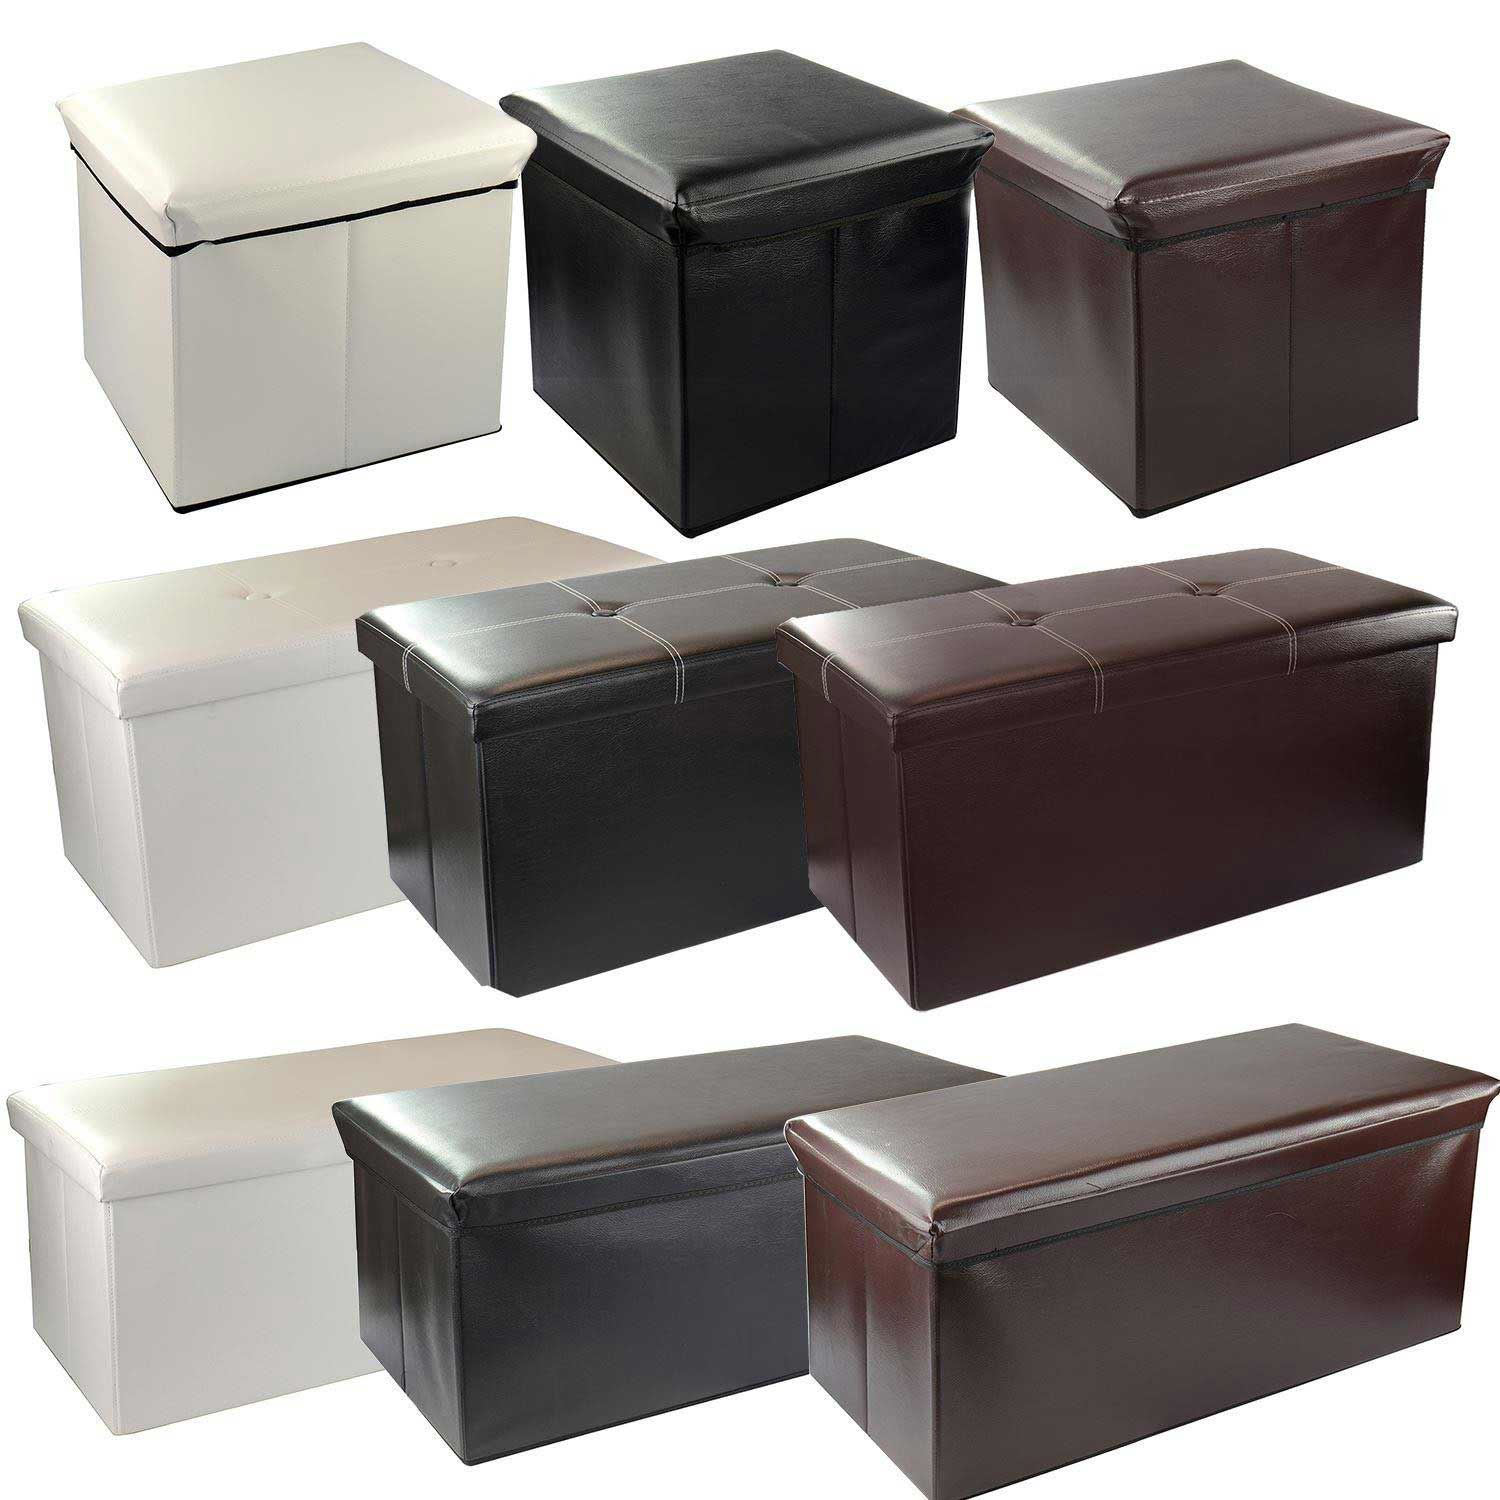 Kids Collapsible Ottoman Toy Books Box Storage Seat Chest: Large Folding Faux Leather Ottoman Storage Chest Blanket